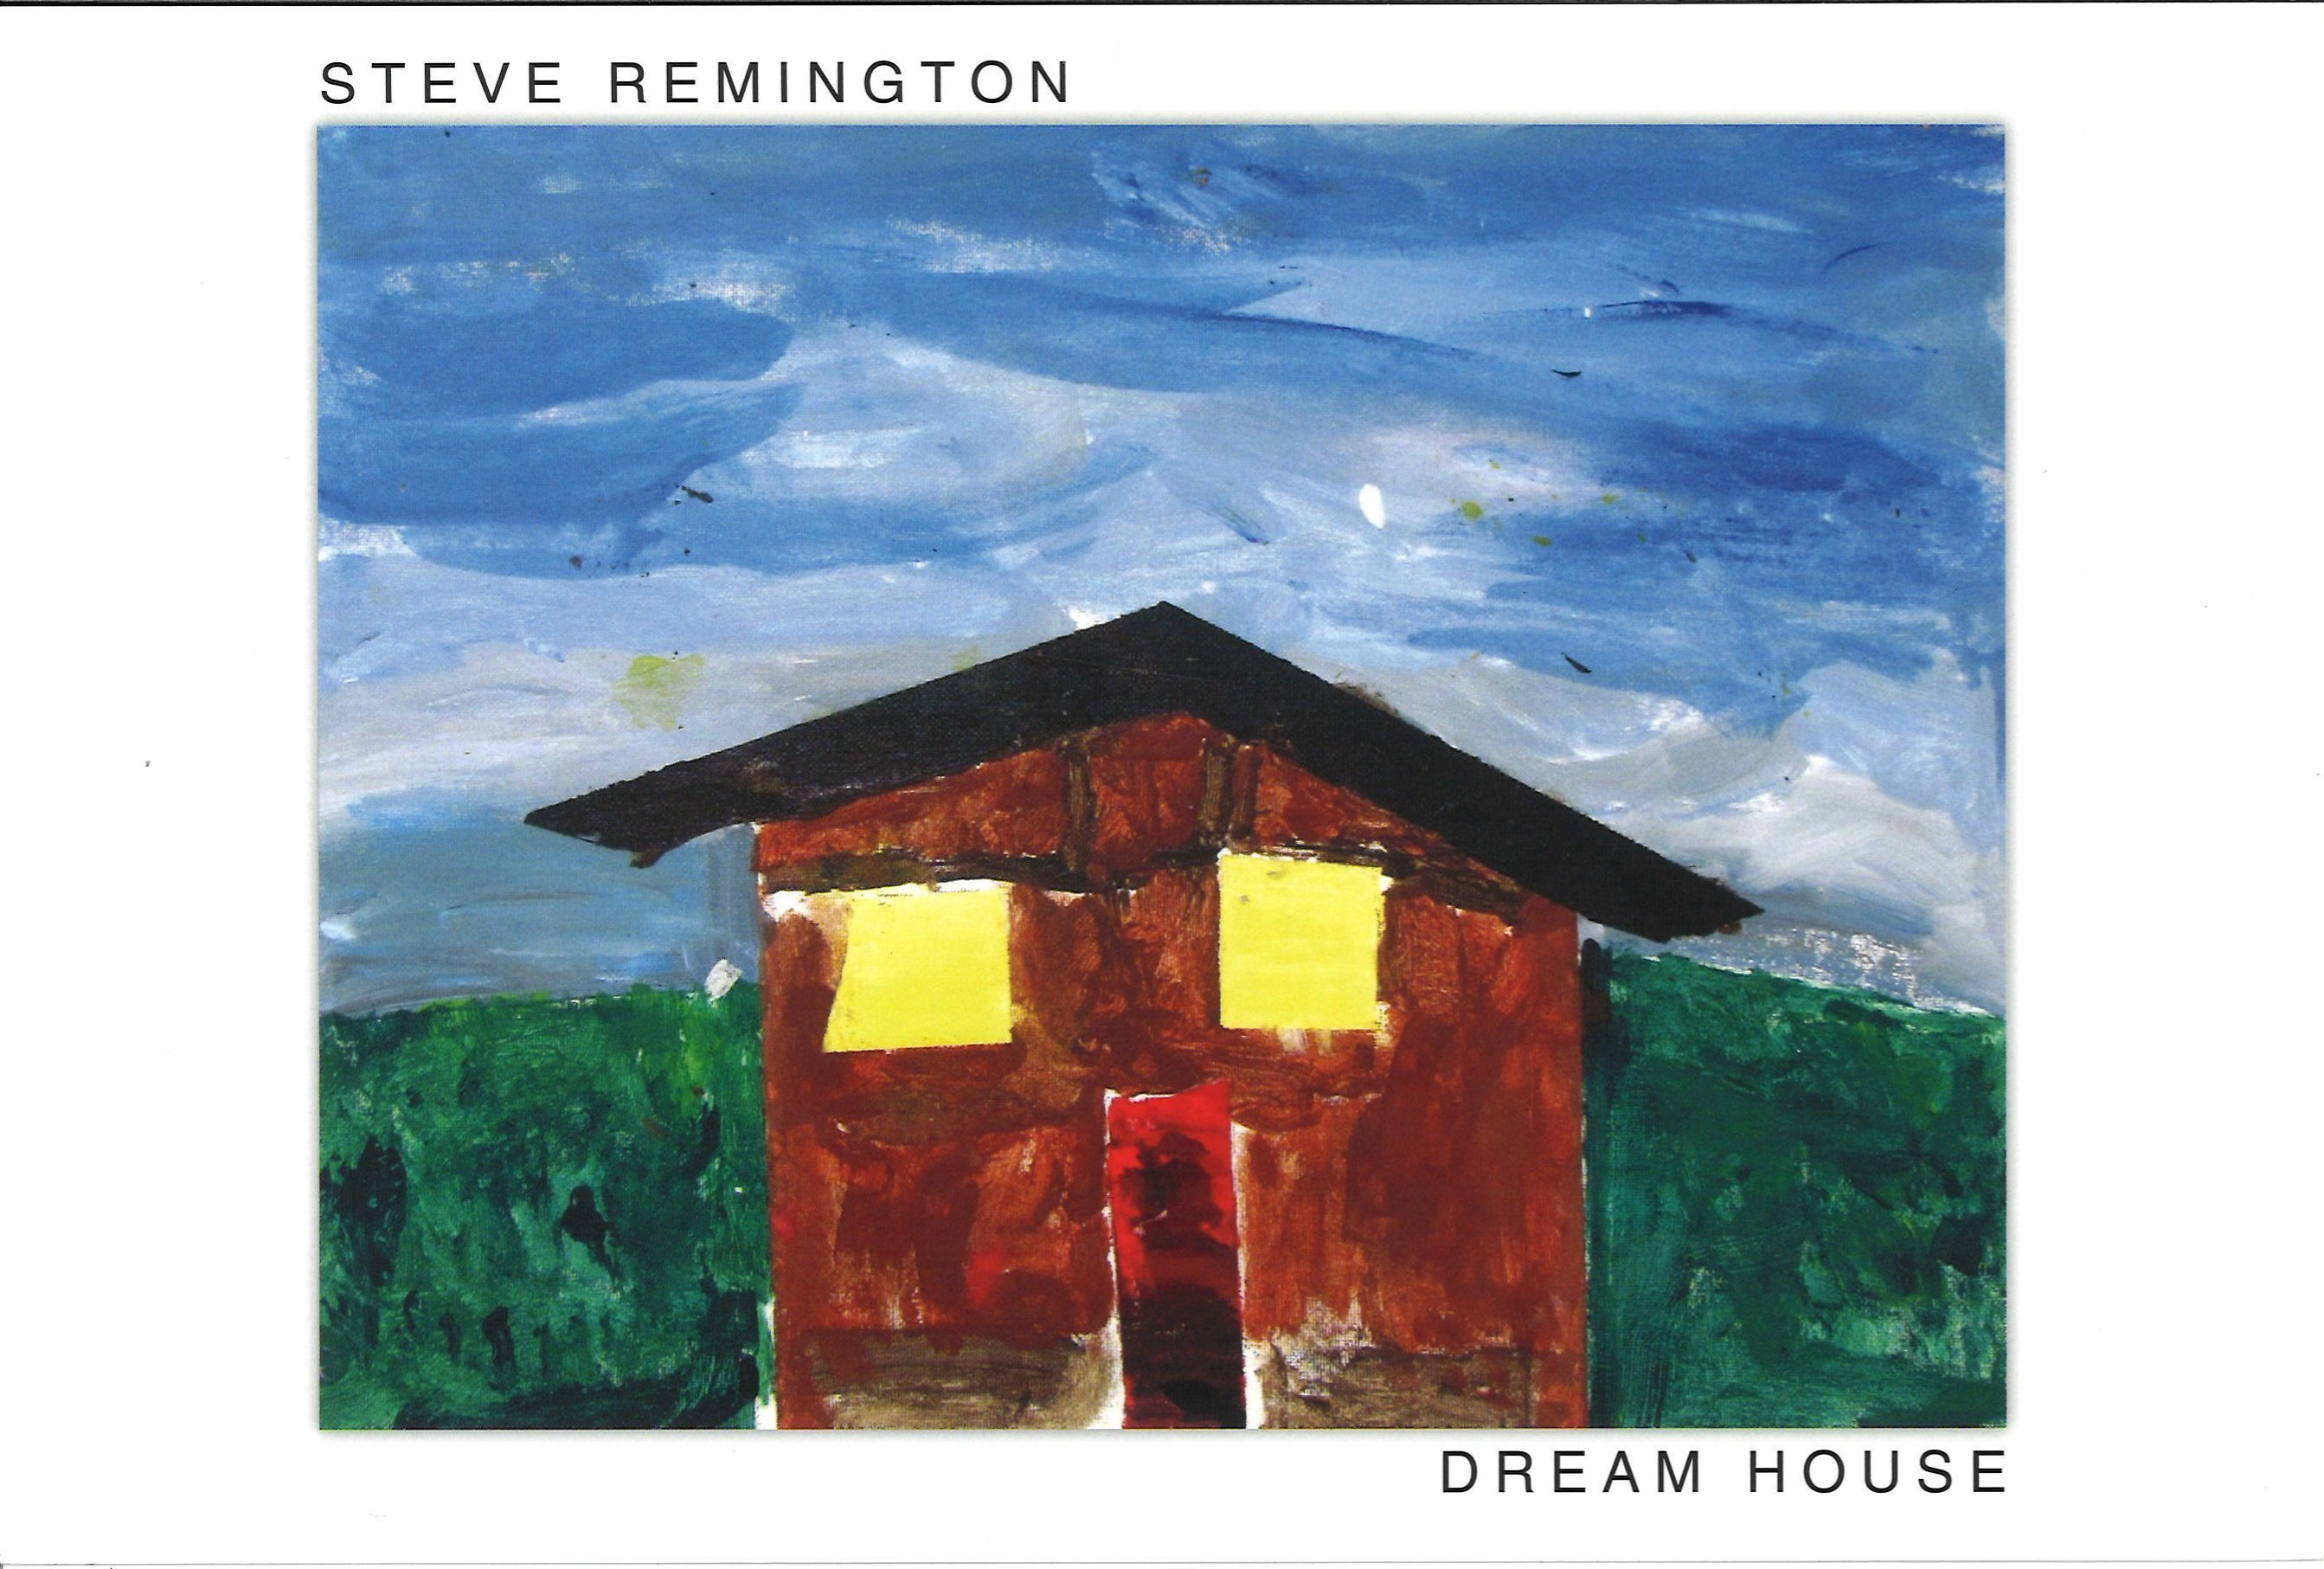 Dream House: Steve Remington